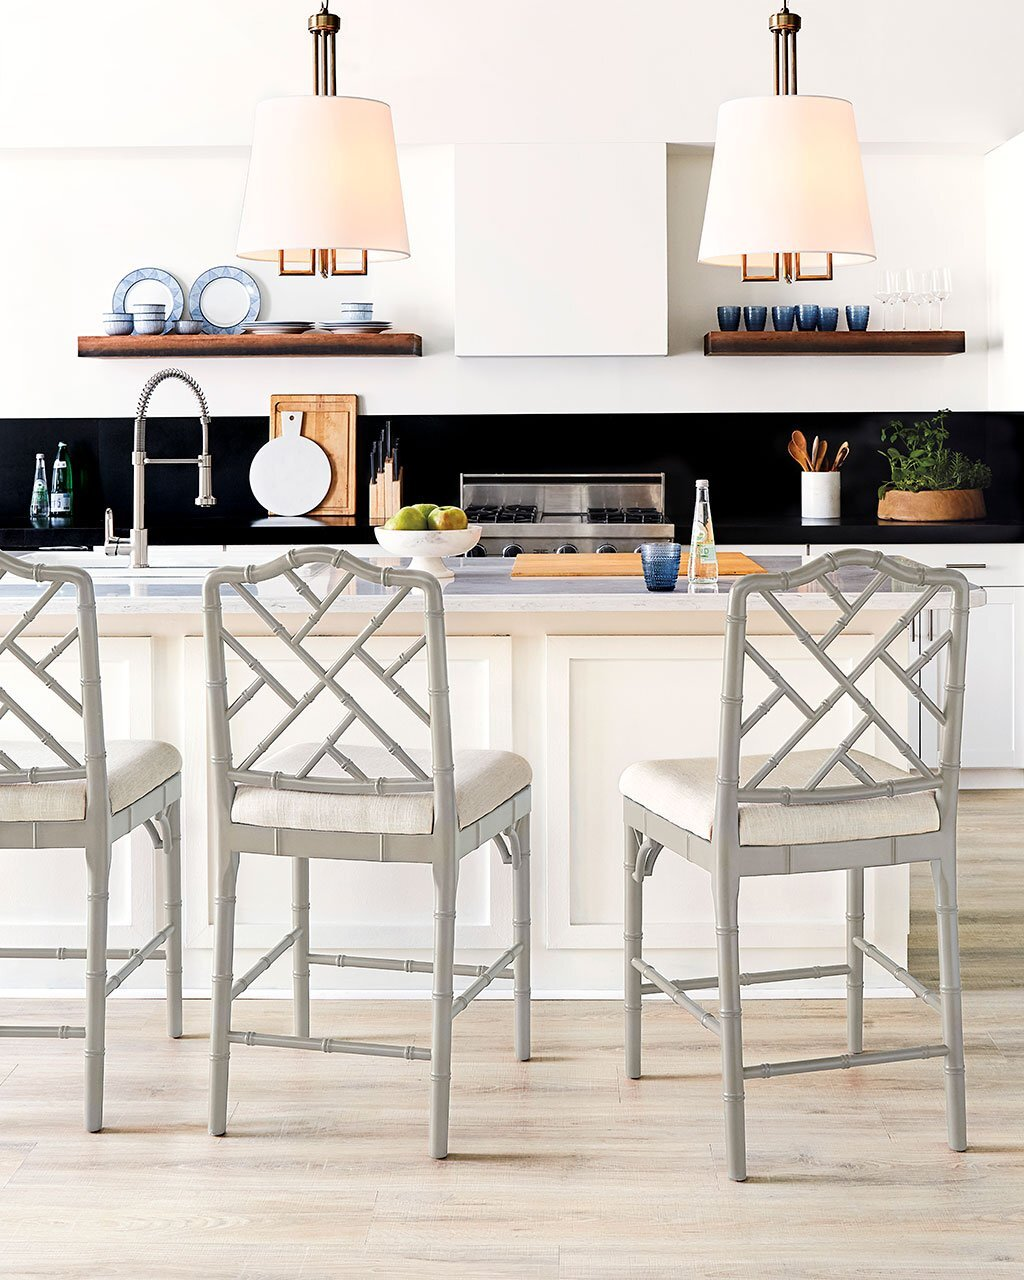 Best Barstools and Counter Height Stools for Kitchen Islands <br ...